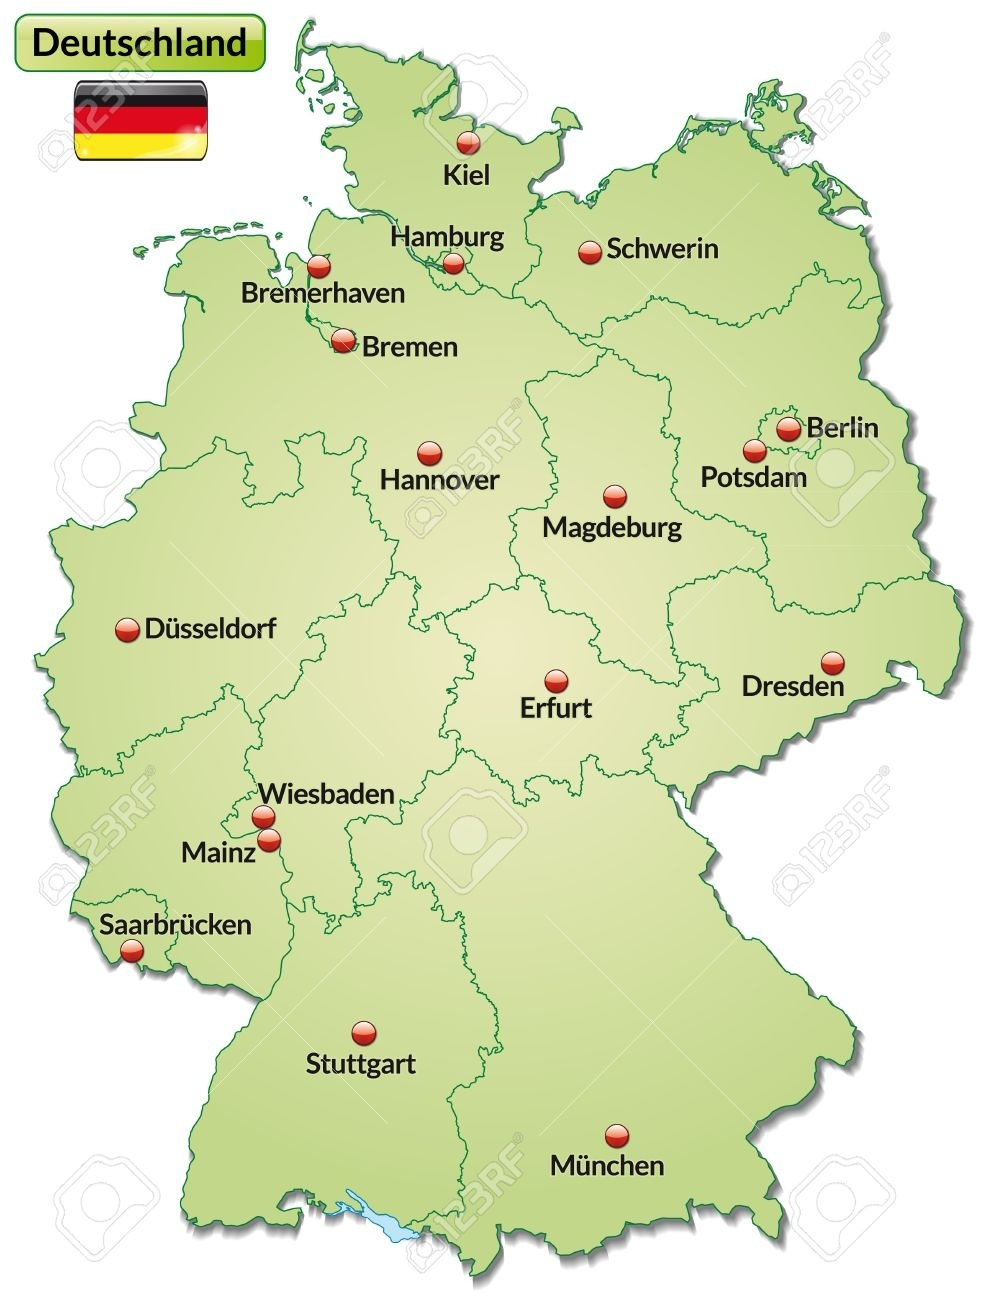 Map Of Germany With Main Cities In Pastel Green throughout Germany Map Main Cities